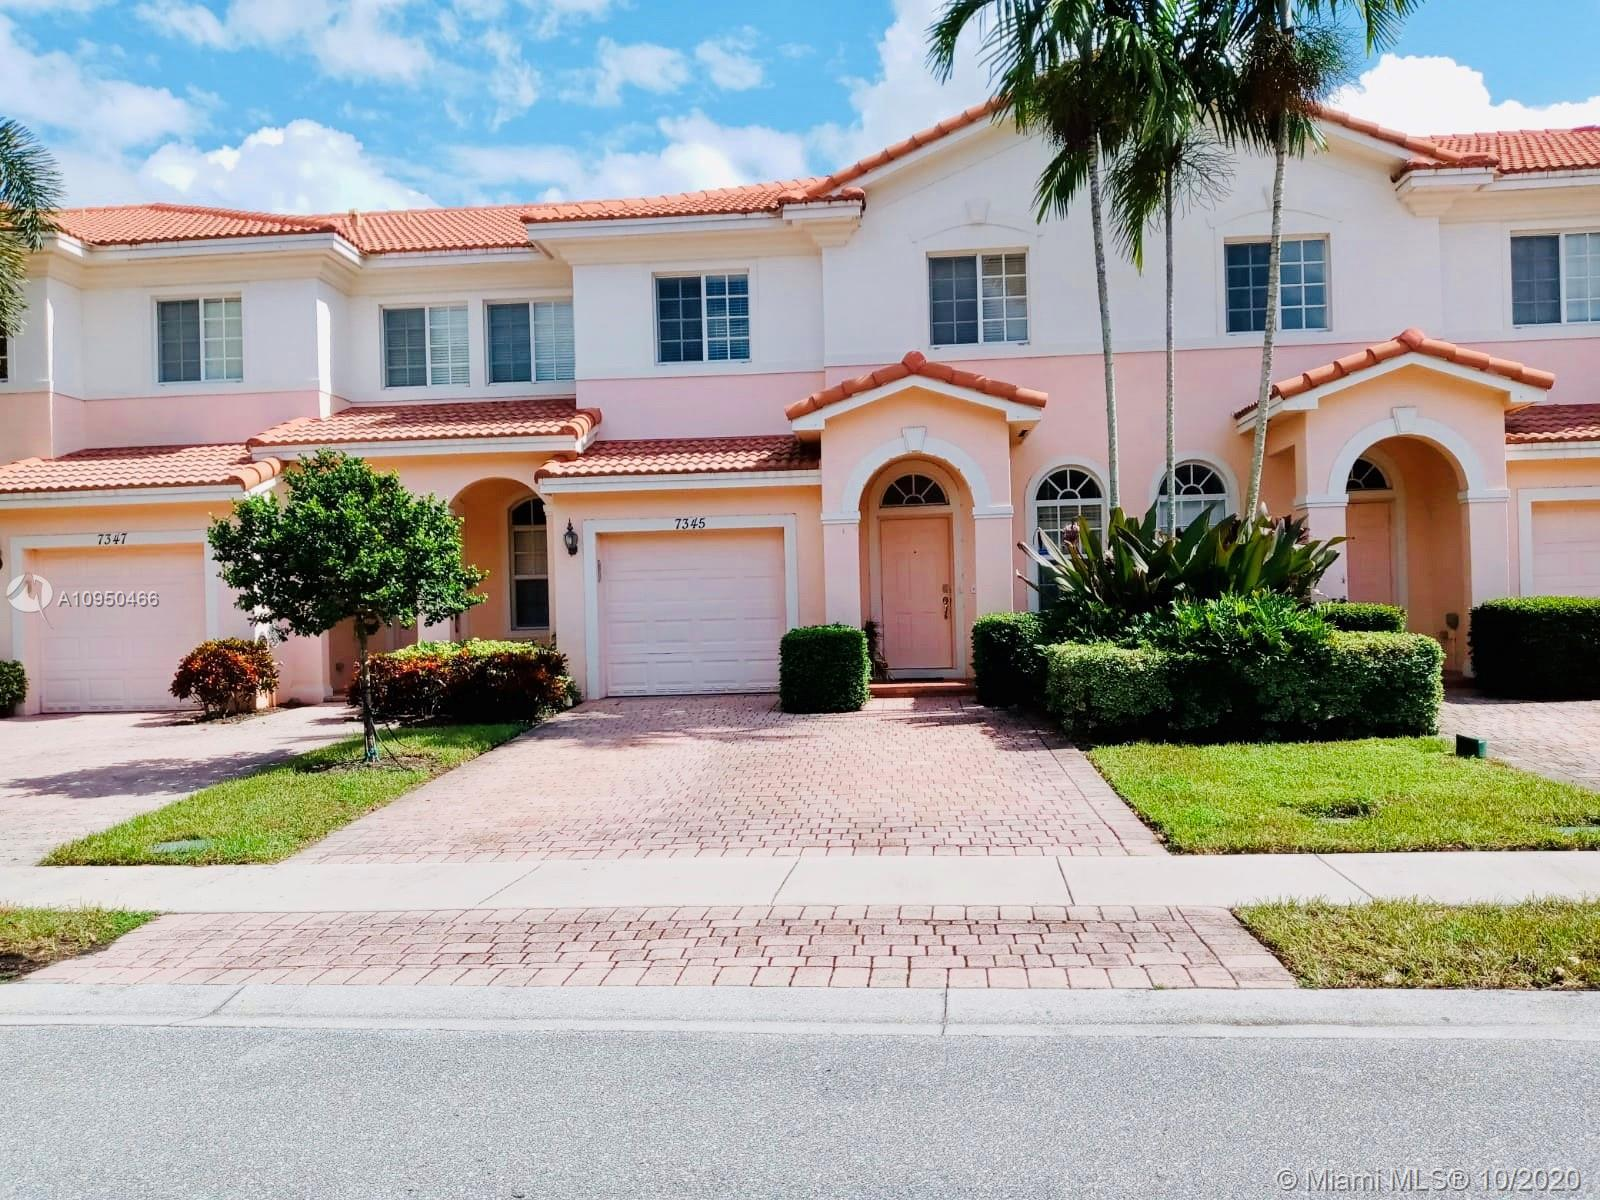 RARELY AVAILABLE BIGGEST TOWNHOME 1877 SQFT,  3BED, 3.5 BATH, HUGE MASTER BEDROOM, PRIVATE BERNS NO